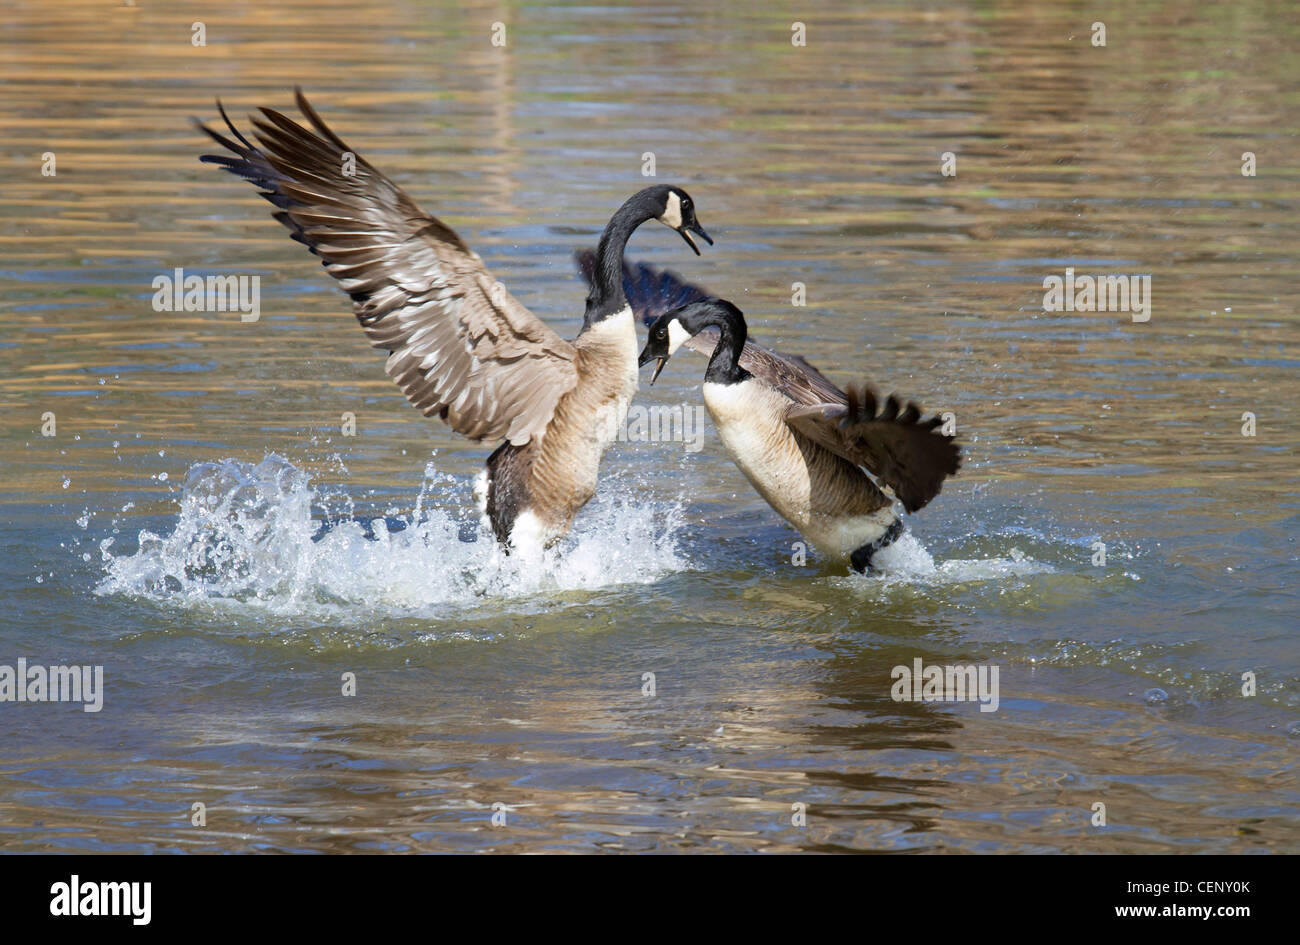 Males Canada geese (Branta canadensis) fighting for breeding territory. Stock Photo